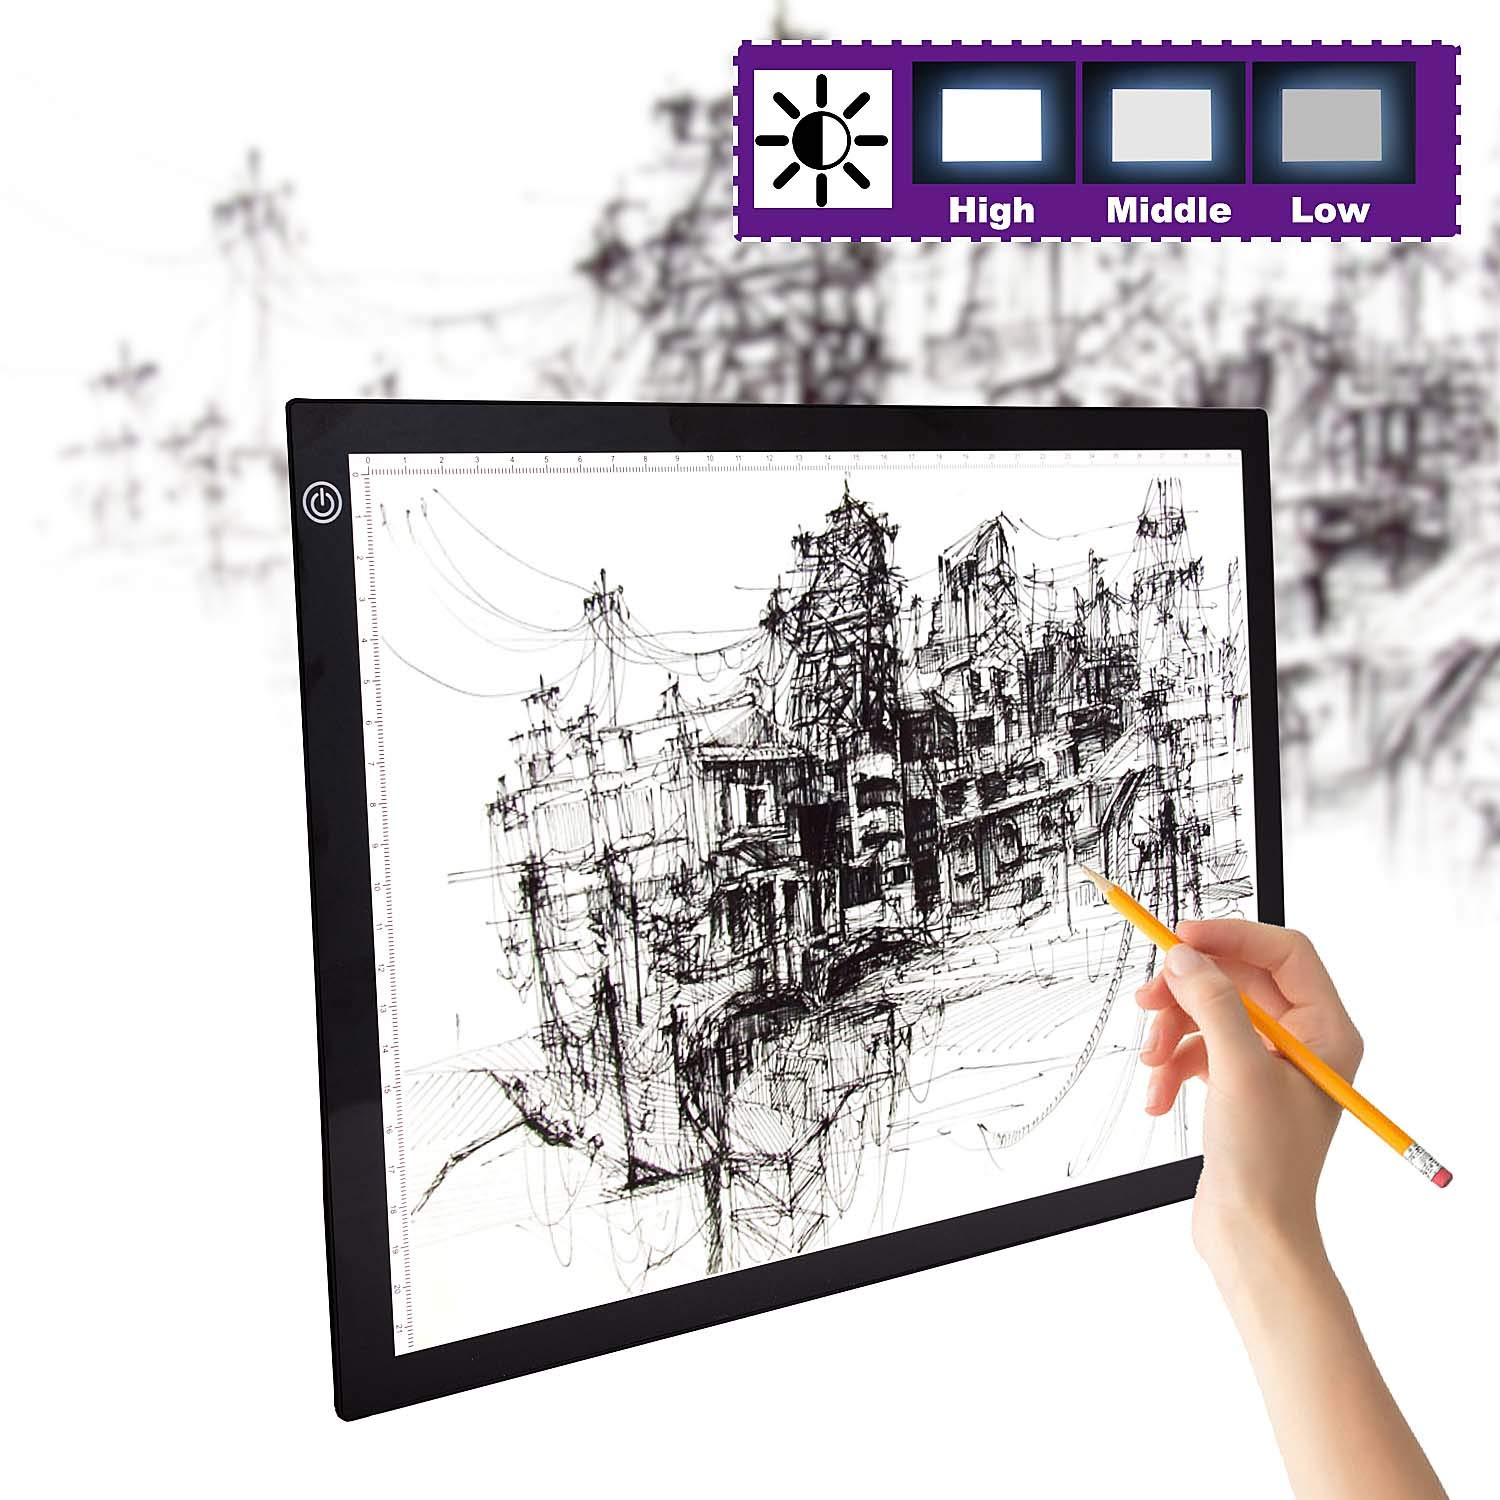 A4/A3 LED Copy Board Light Box,2019 New Improved Frame Structure No Dark Areas,Dimmable Brightness.LED Artcraft Tracing Light Box Light Pad for Artists Drawing Sketching Animation Stencilling X-rayVie by Hokone